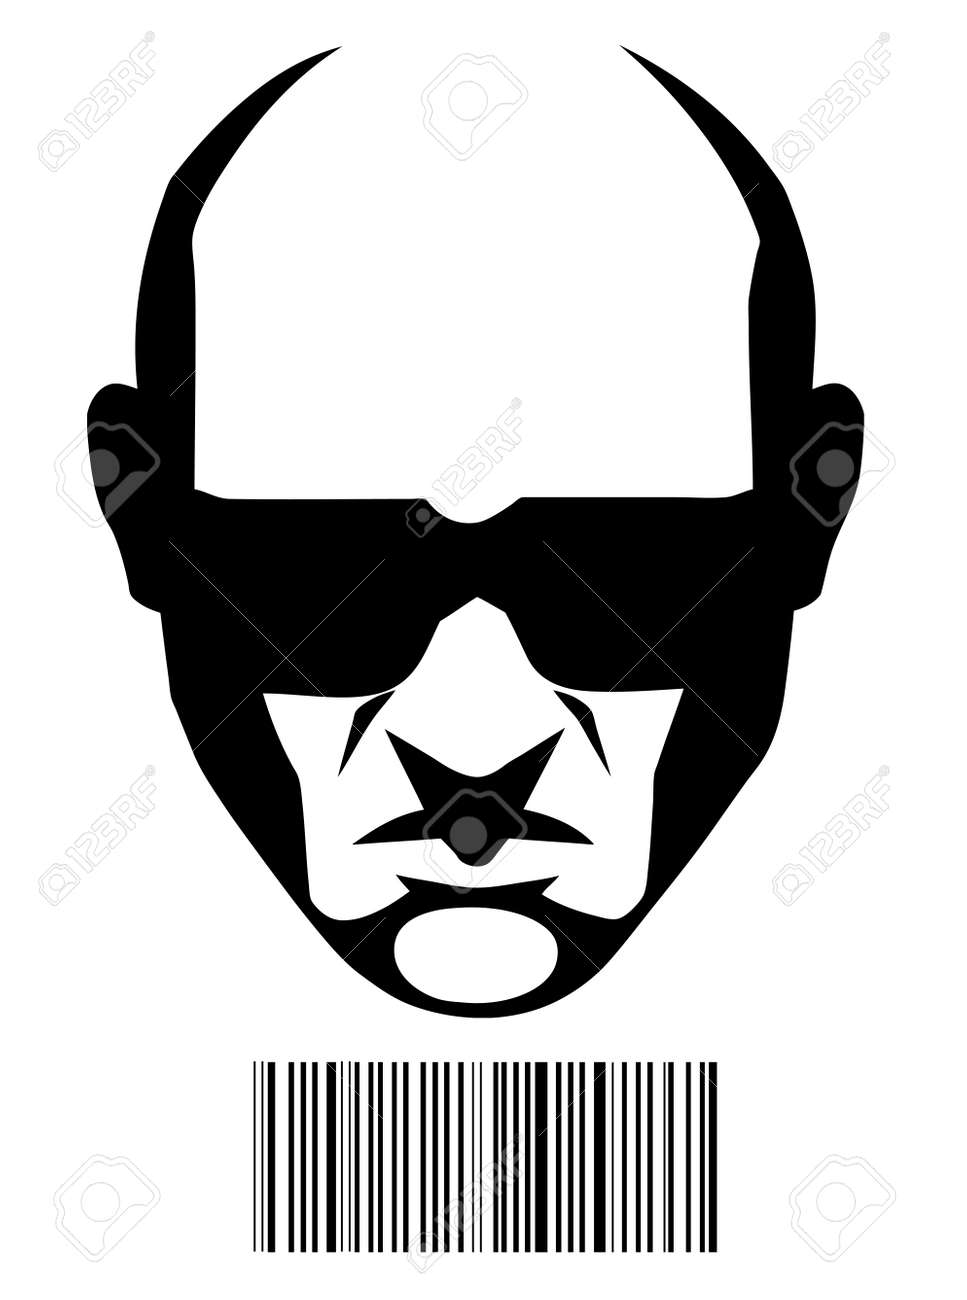 Hitman Face And Barcode Identification Royalty Free Cliparts Vectors And Stock Illustration Image 5467274